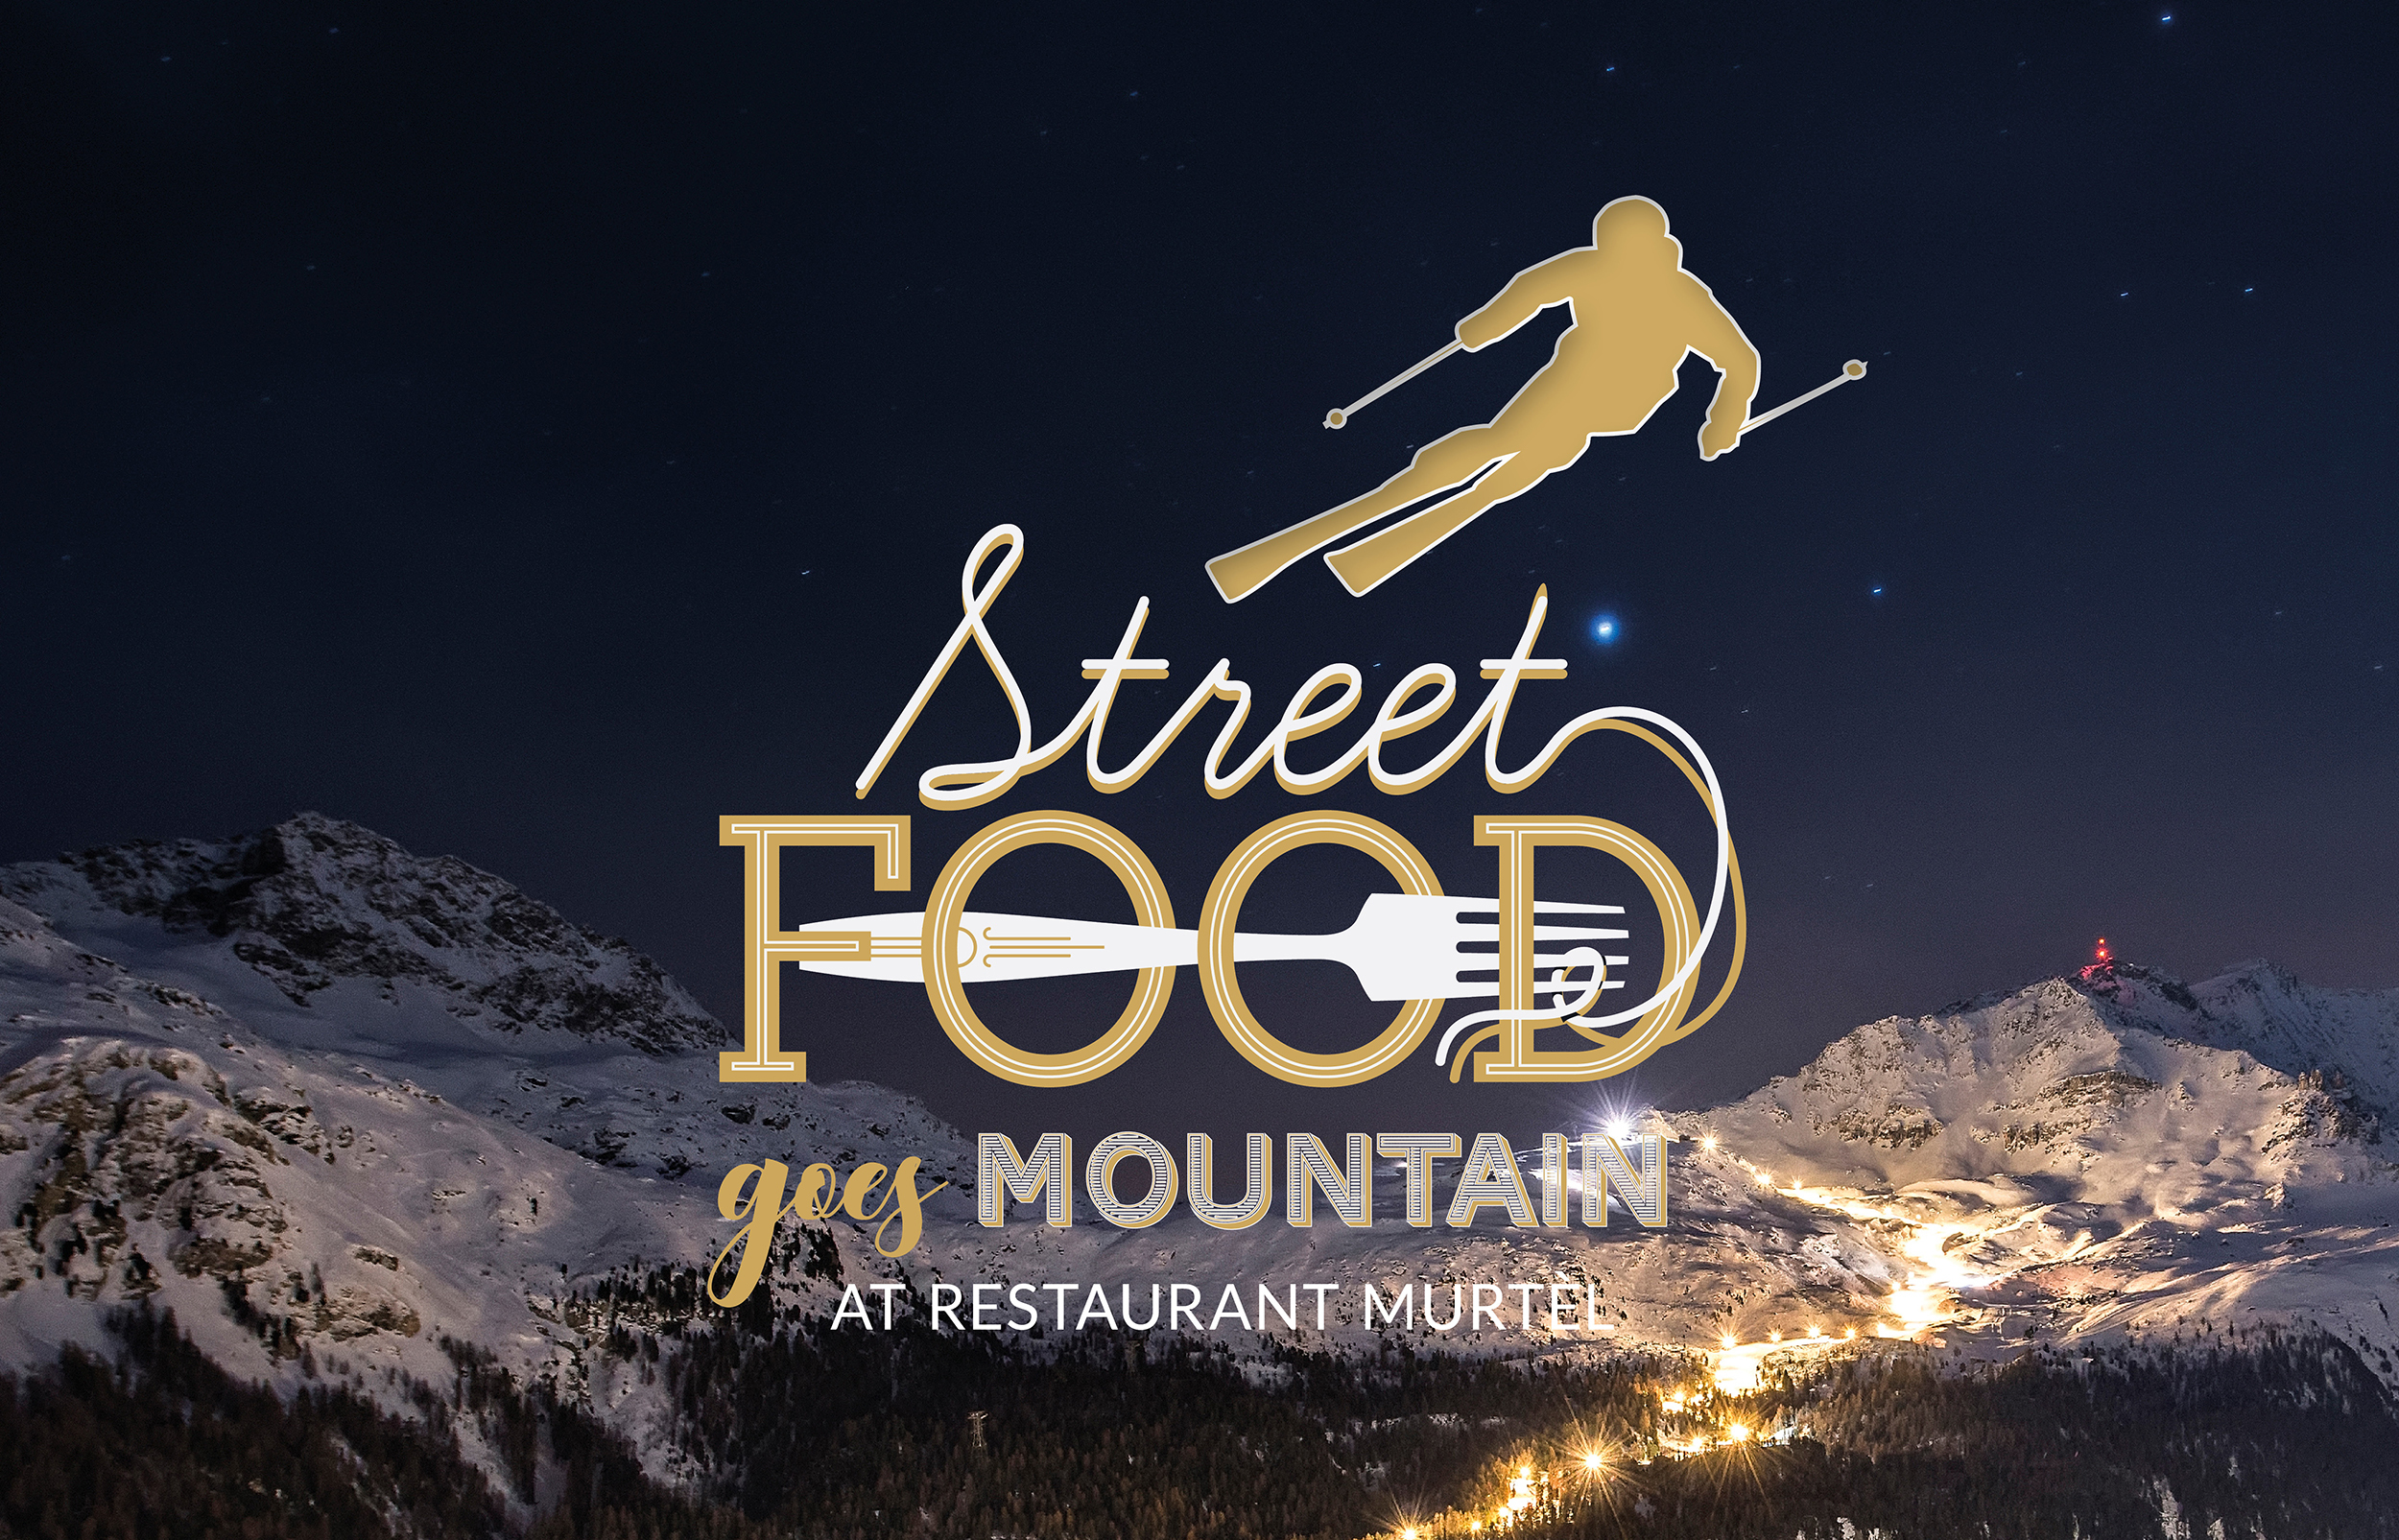 Silvester Snow Night - Street Food goes Mountain